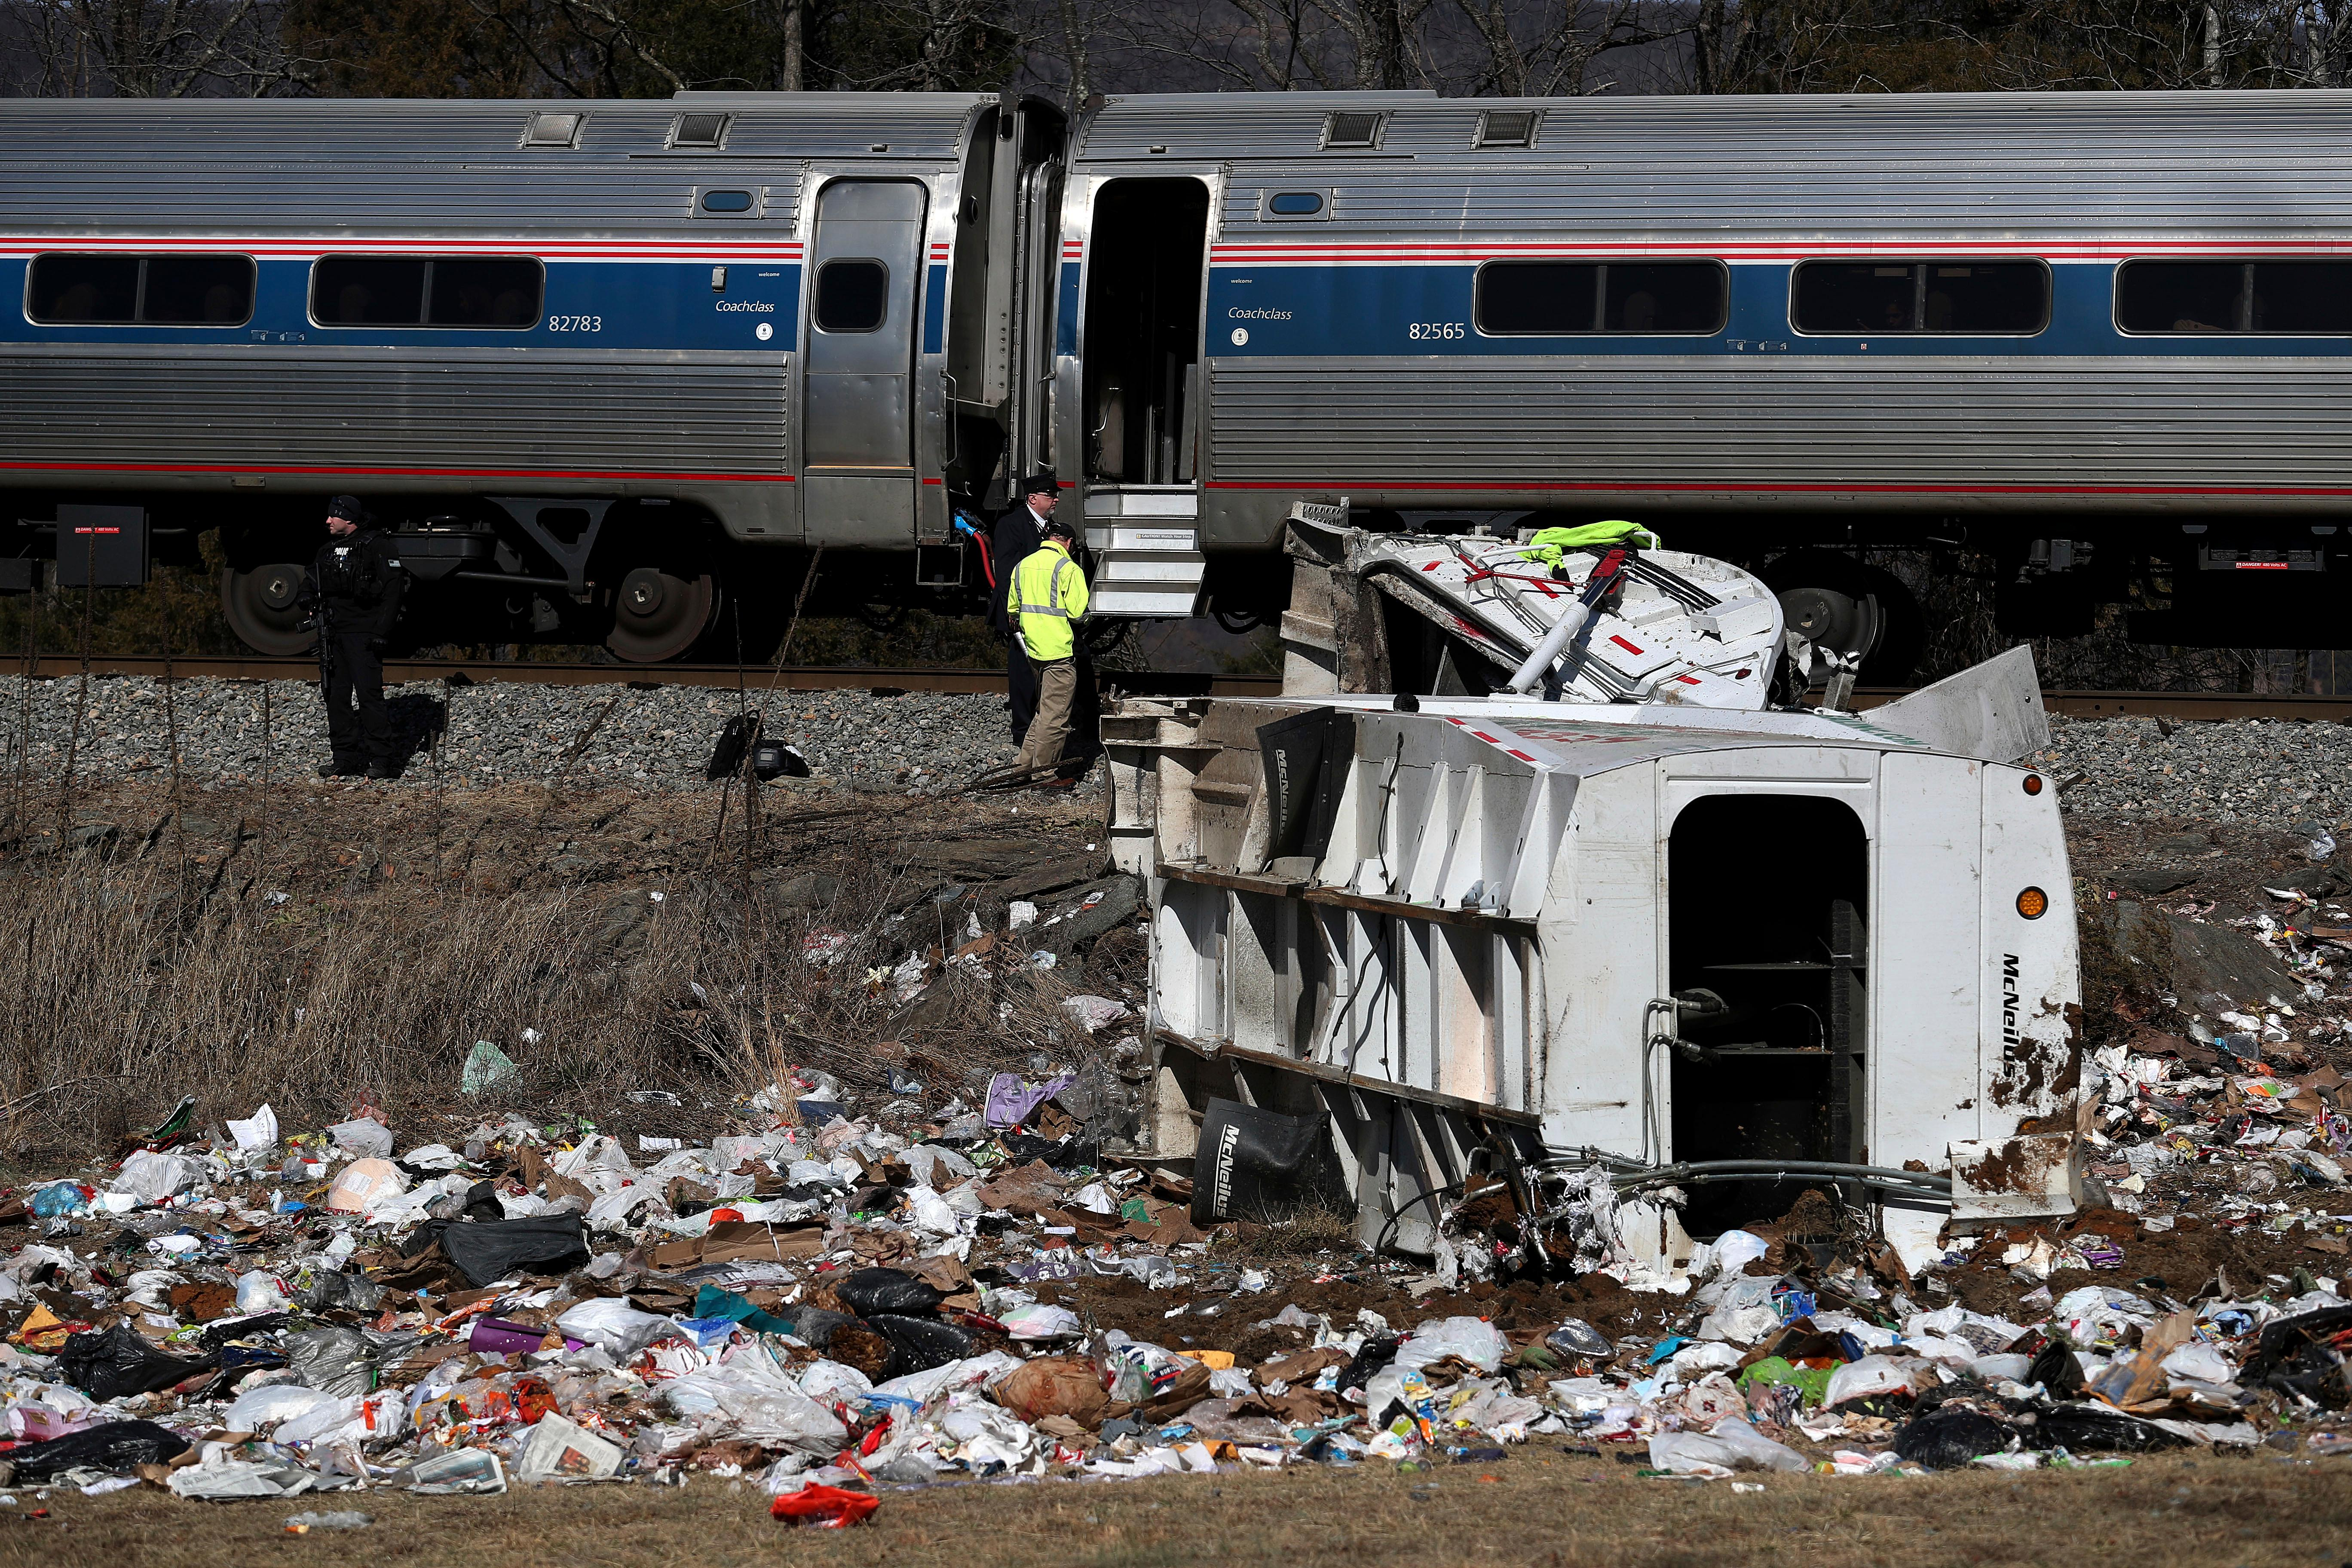 Emergency personnel work at the scene of a train crash involving a garbage truck in Crozet, Va., on Wednesday, Jan. 31, 2018. An Amtrak passenger train carrying dozens of GOP lawmakers to a Republican retreat in West Virginia struck a garbage truck south of Charlottesville, Va. (Zack Wajsgrasu/The Daily Progress via AP)